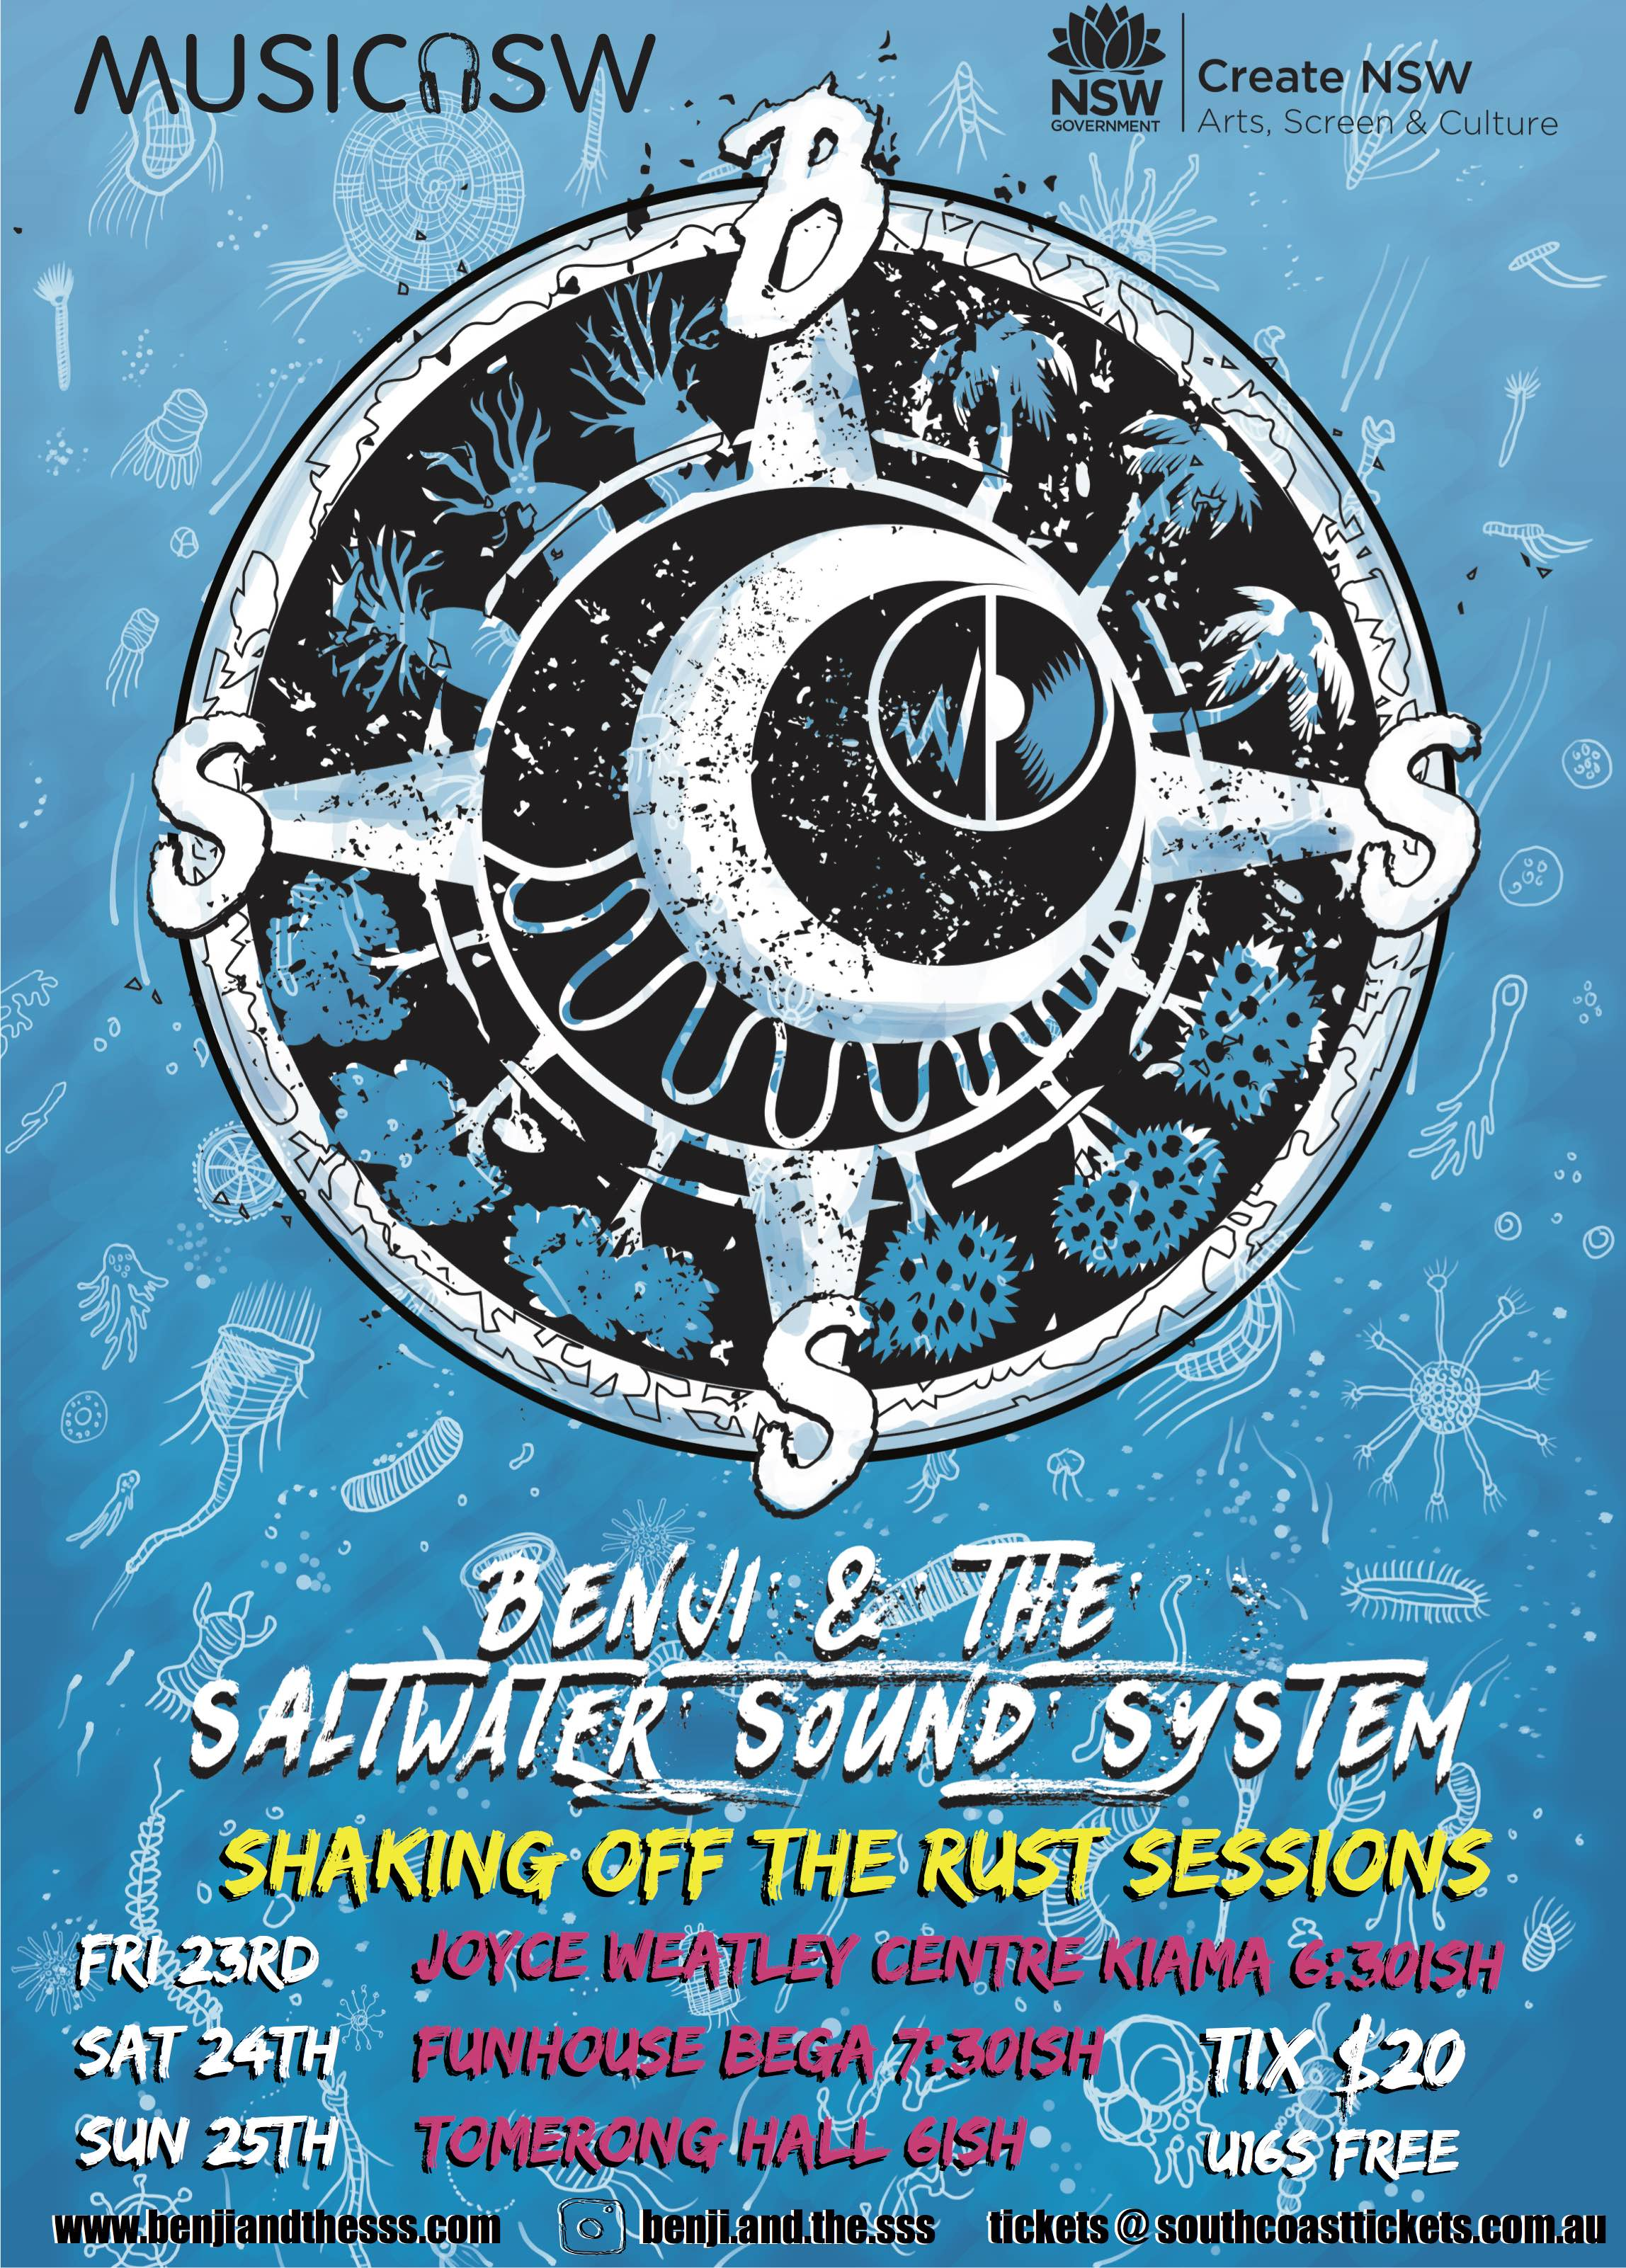 Benji & the Saltwater Sound System at Kiama